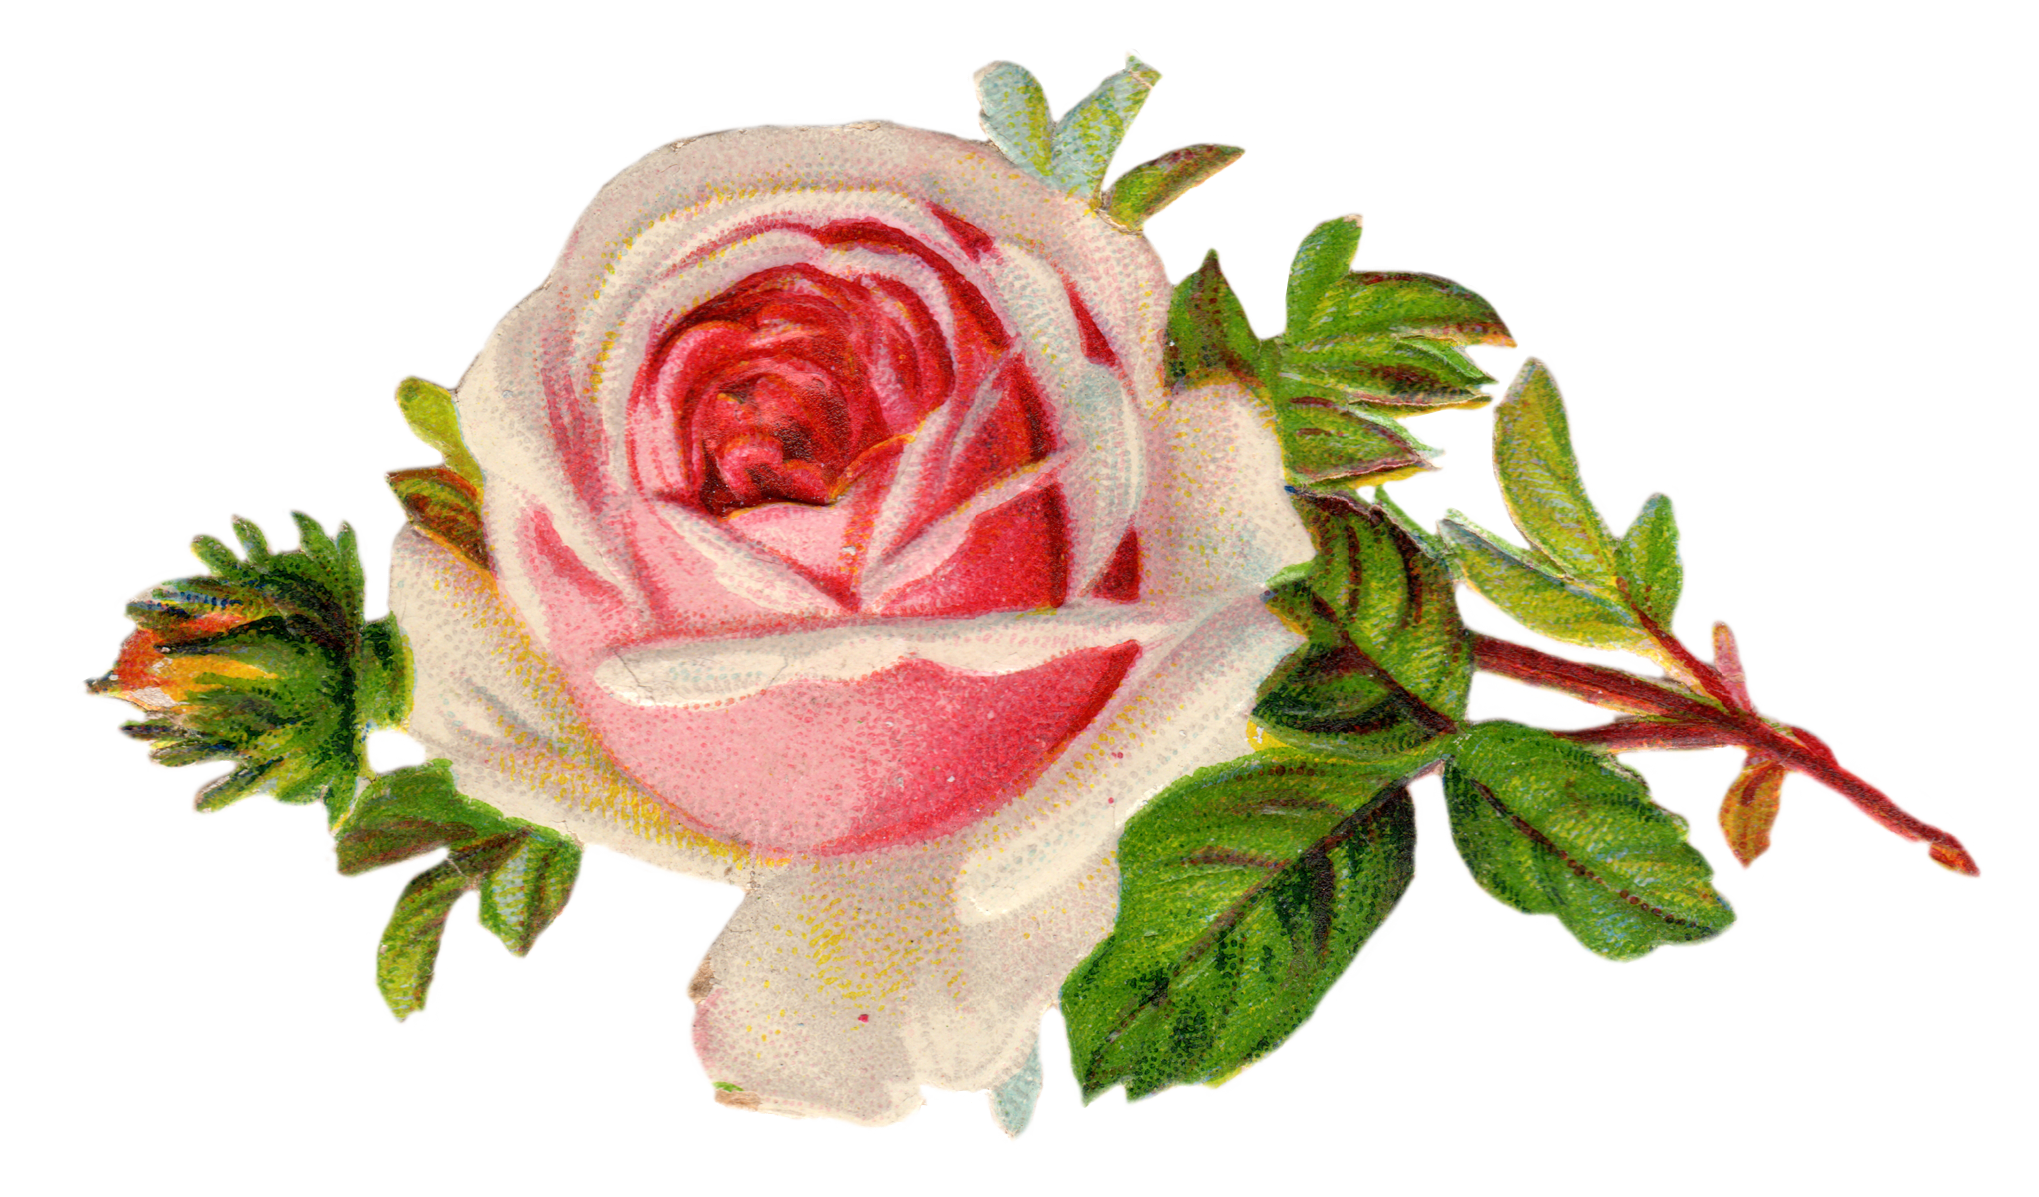 Clipart roses. Free vintage rose clip